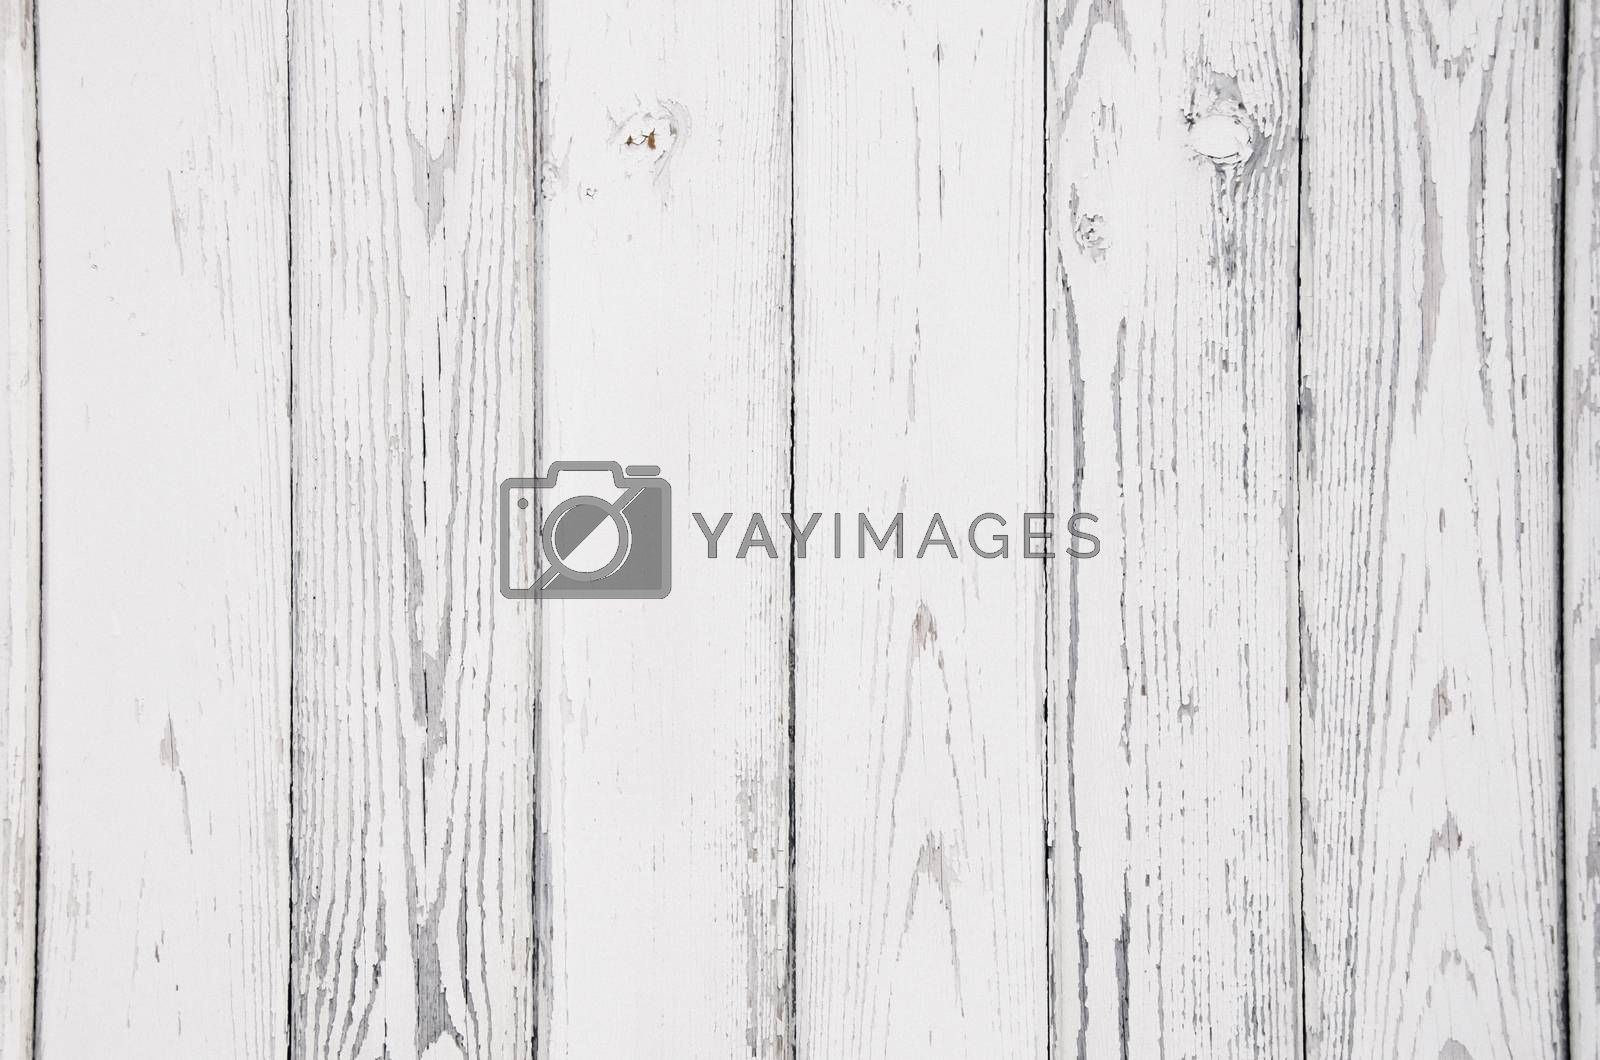 Photo of the Natural Light Wooden Background